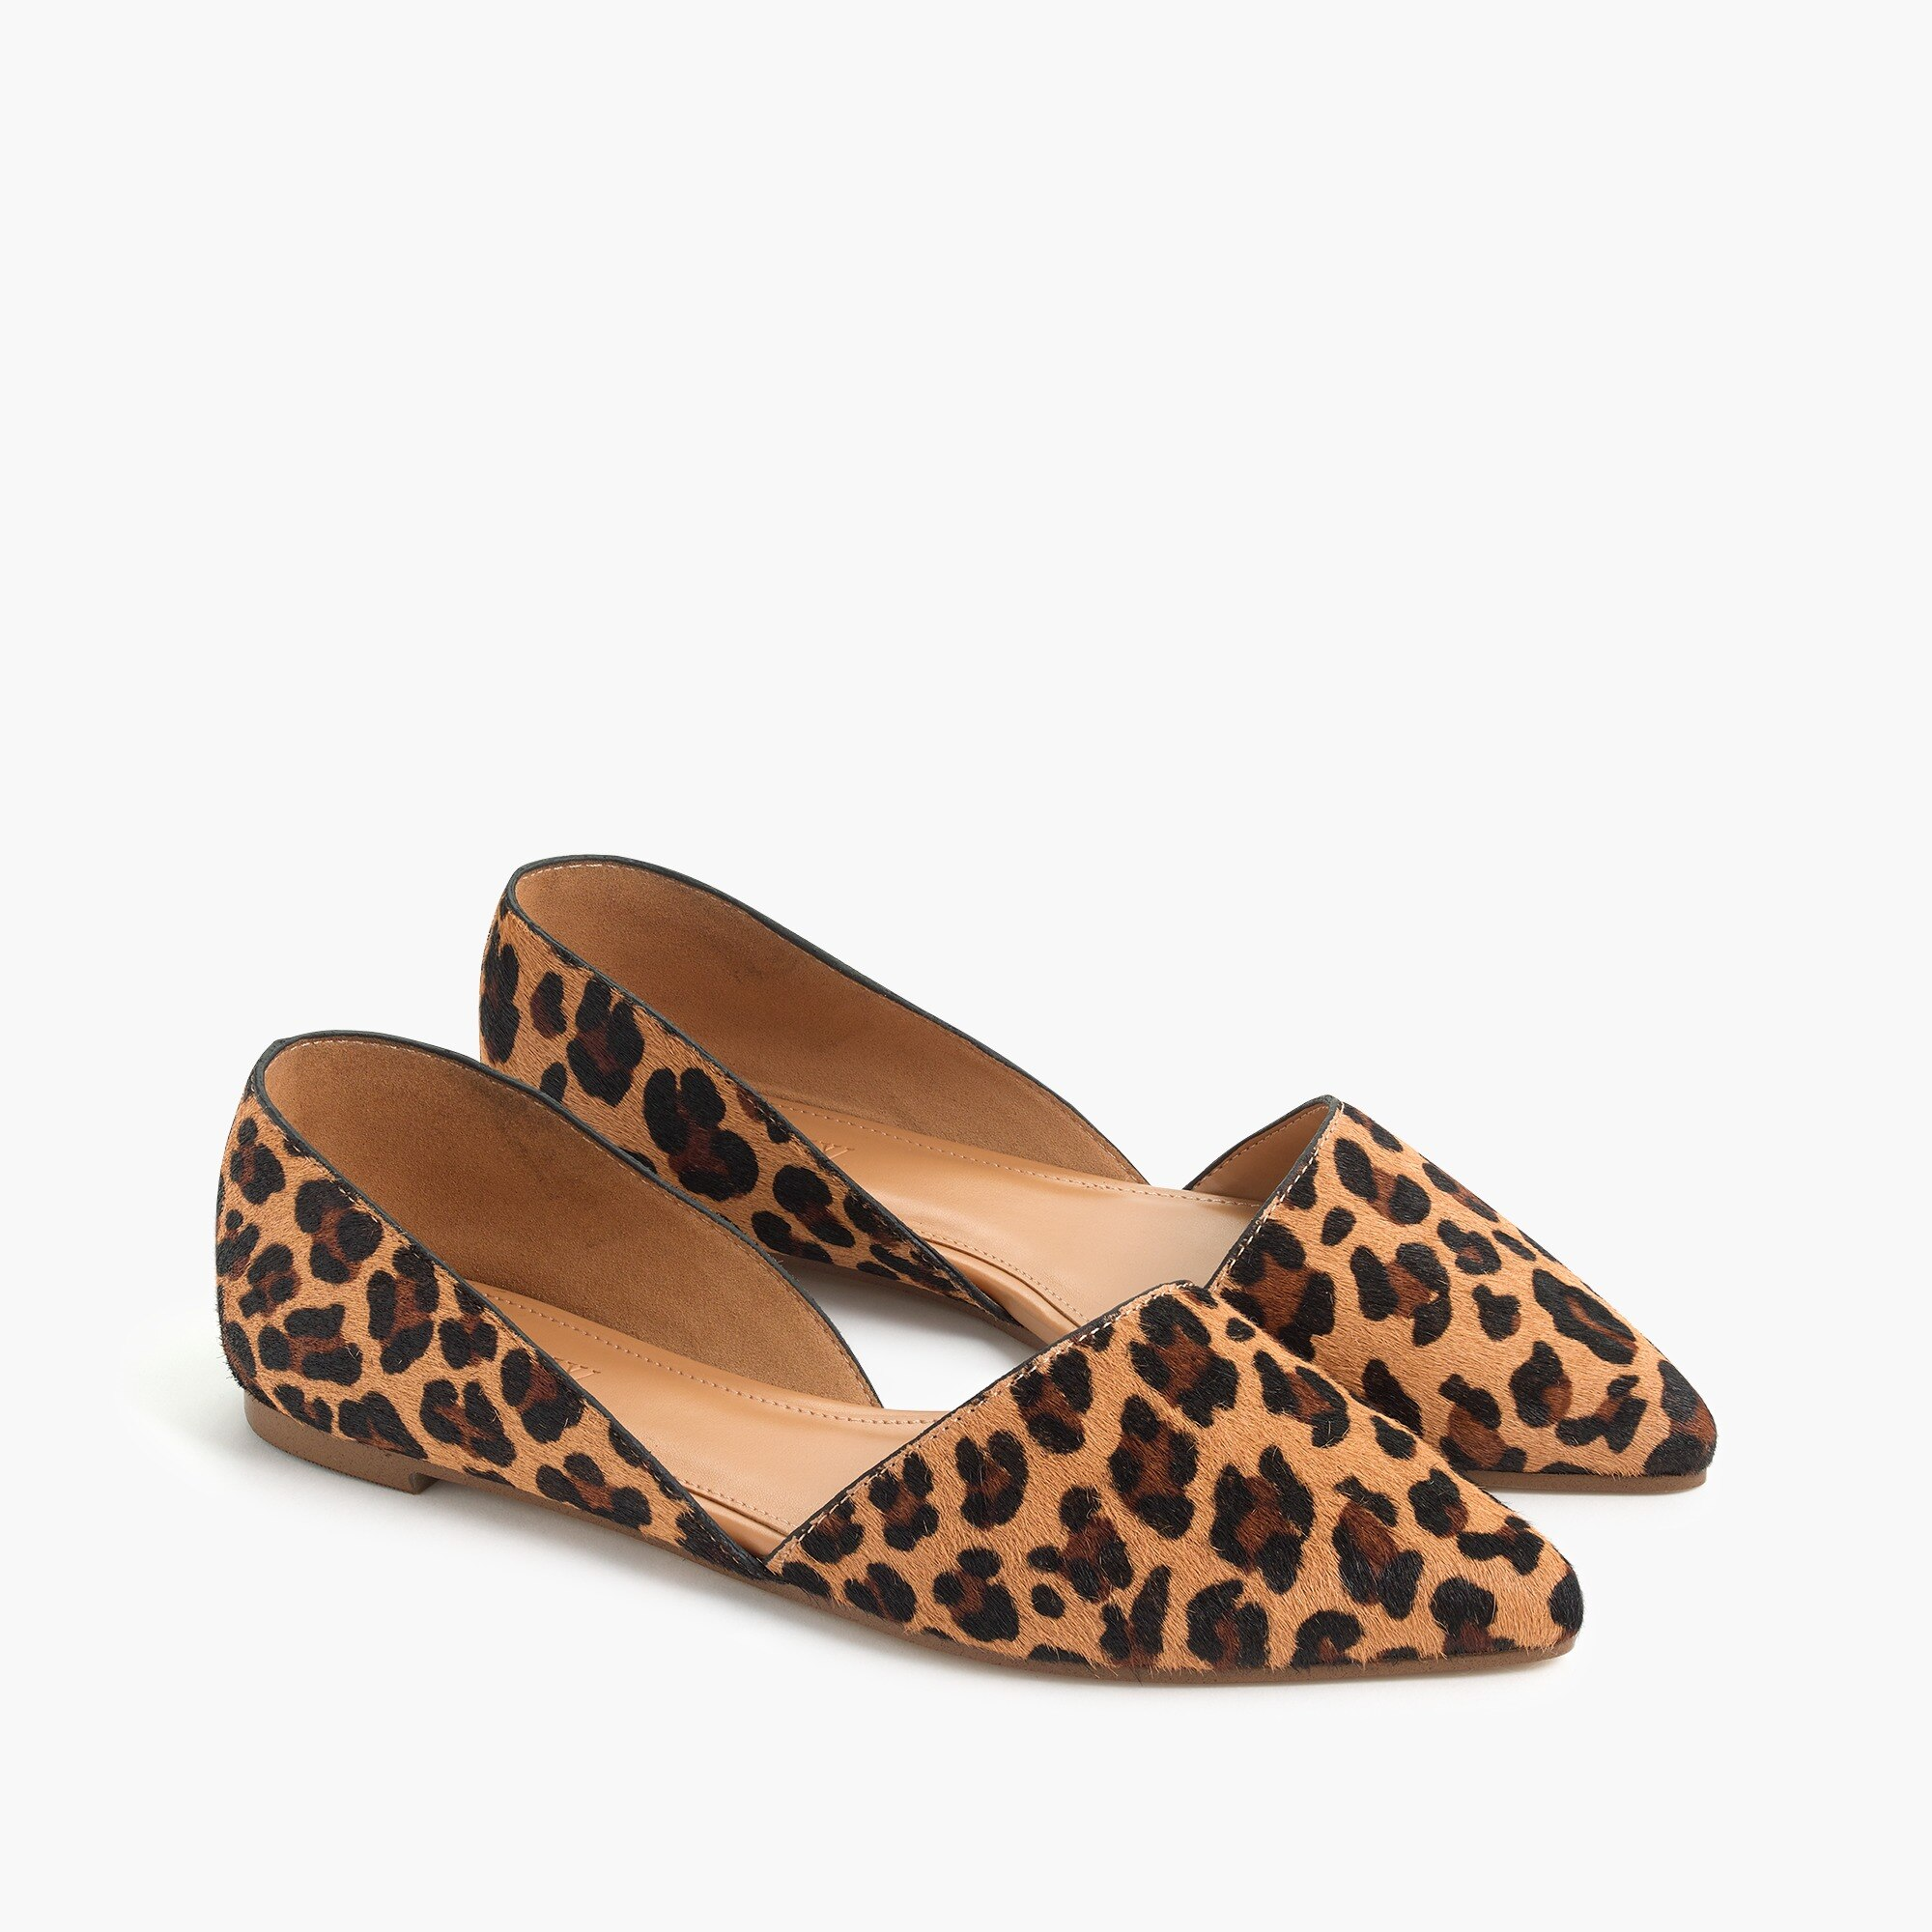 Zoe calf hair d'Orsay flats factorywomen shoes c